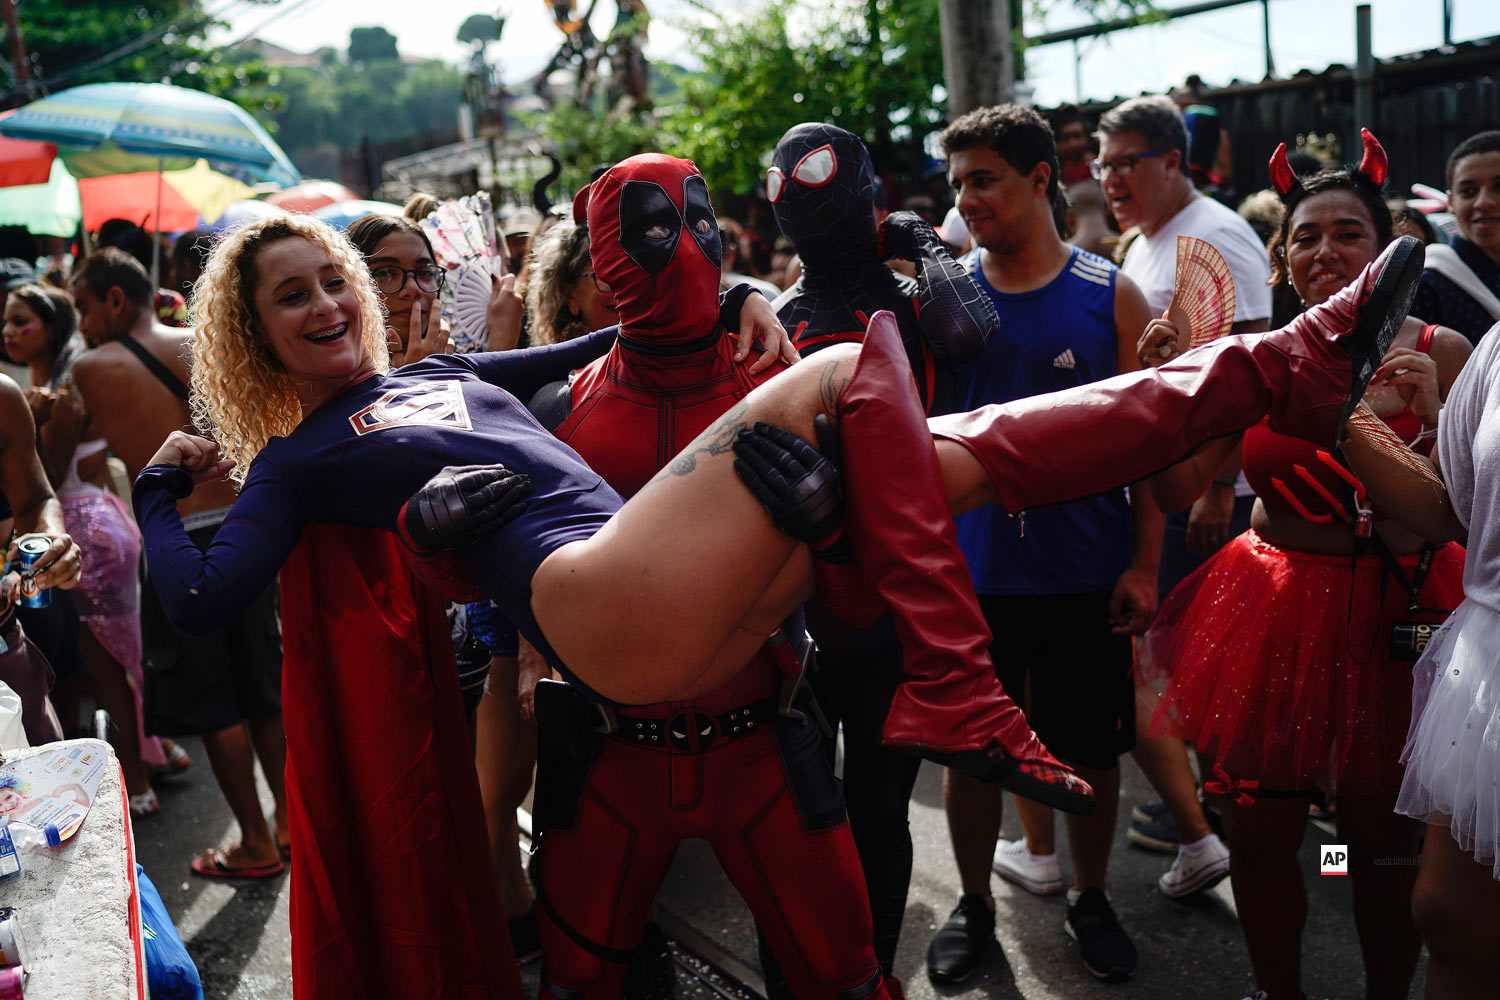 A reveler wearing a Deadpool costume carries a woman in a Super Woman costume as they enjoy the Carmelitas street party in Rio de Janeiro, Brazil, Friday, March 1, 2019. (AP Photo/Leo Correa)